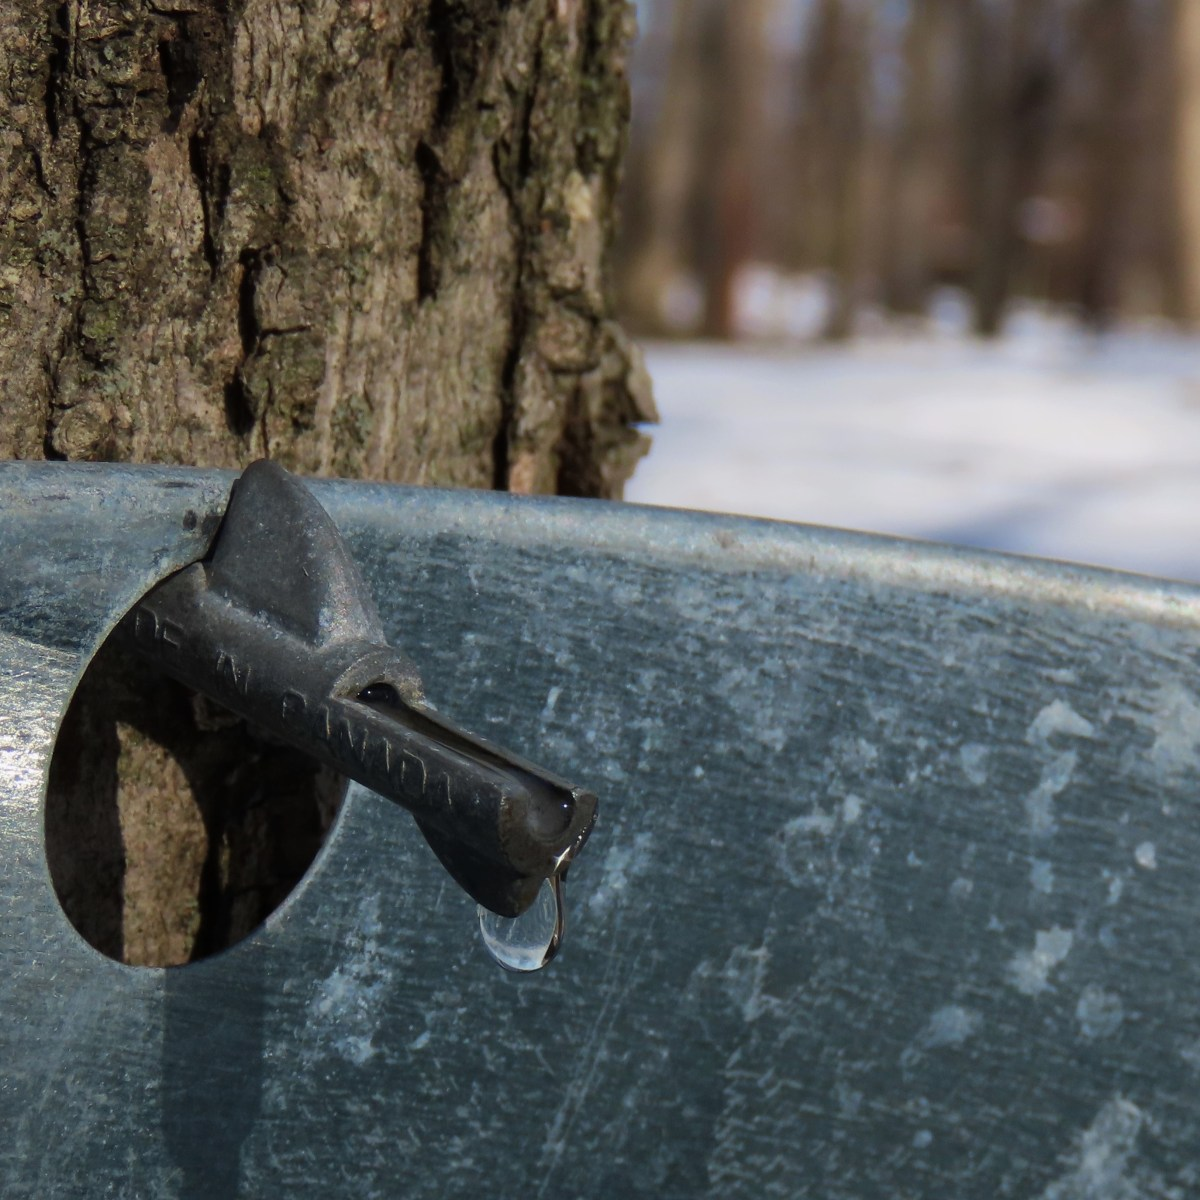 Sap drips from a maple tap into a tin bucket